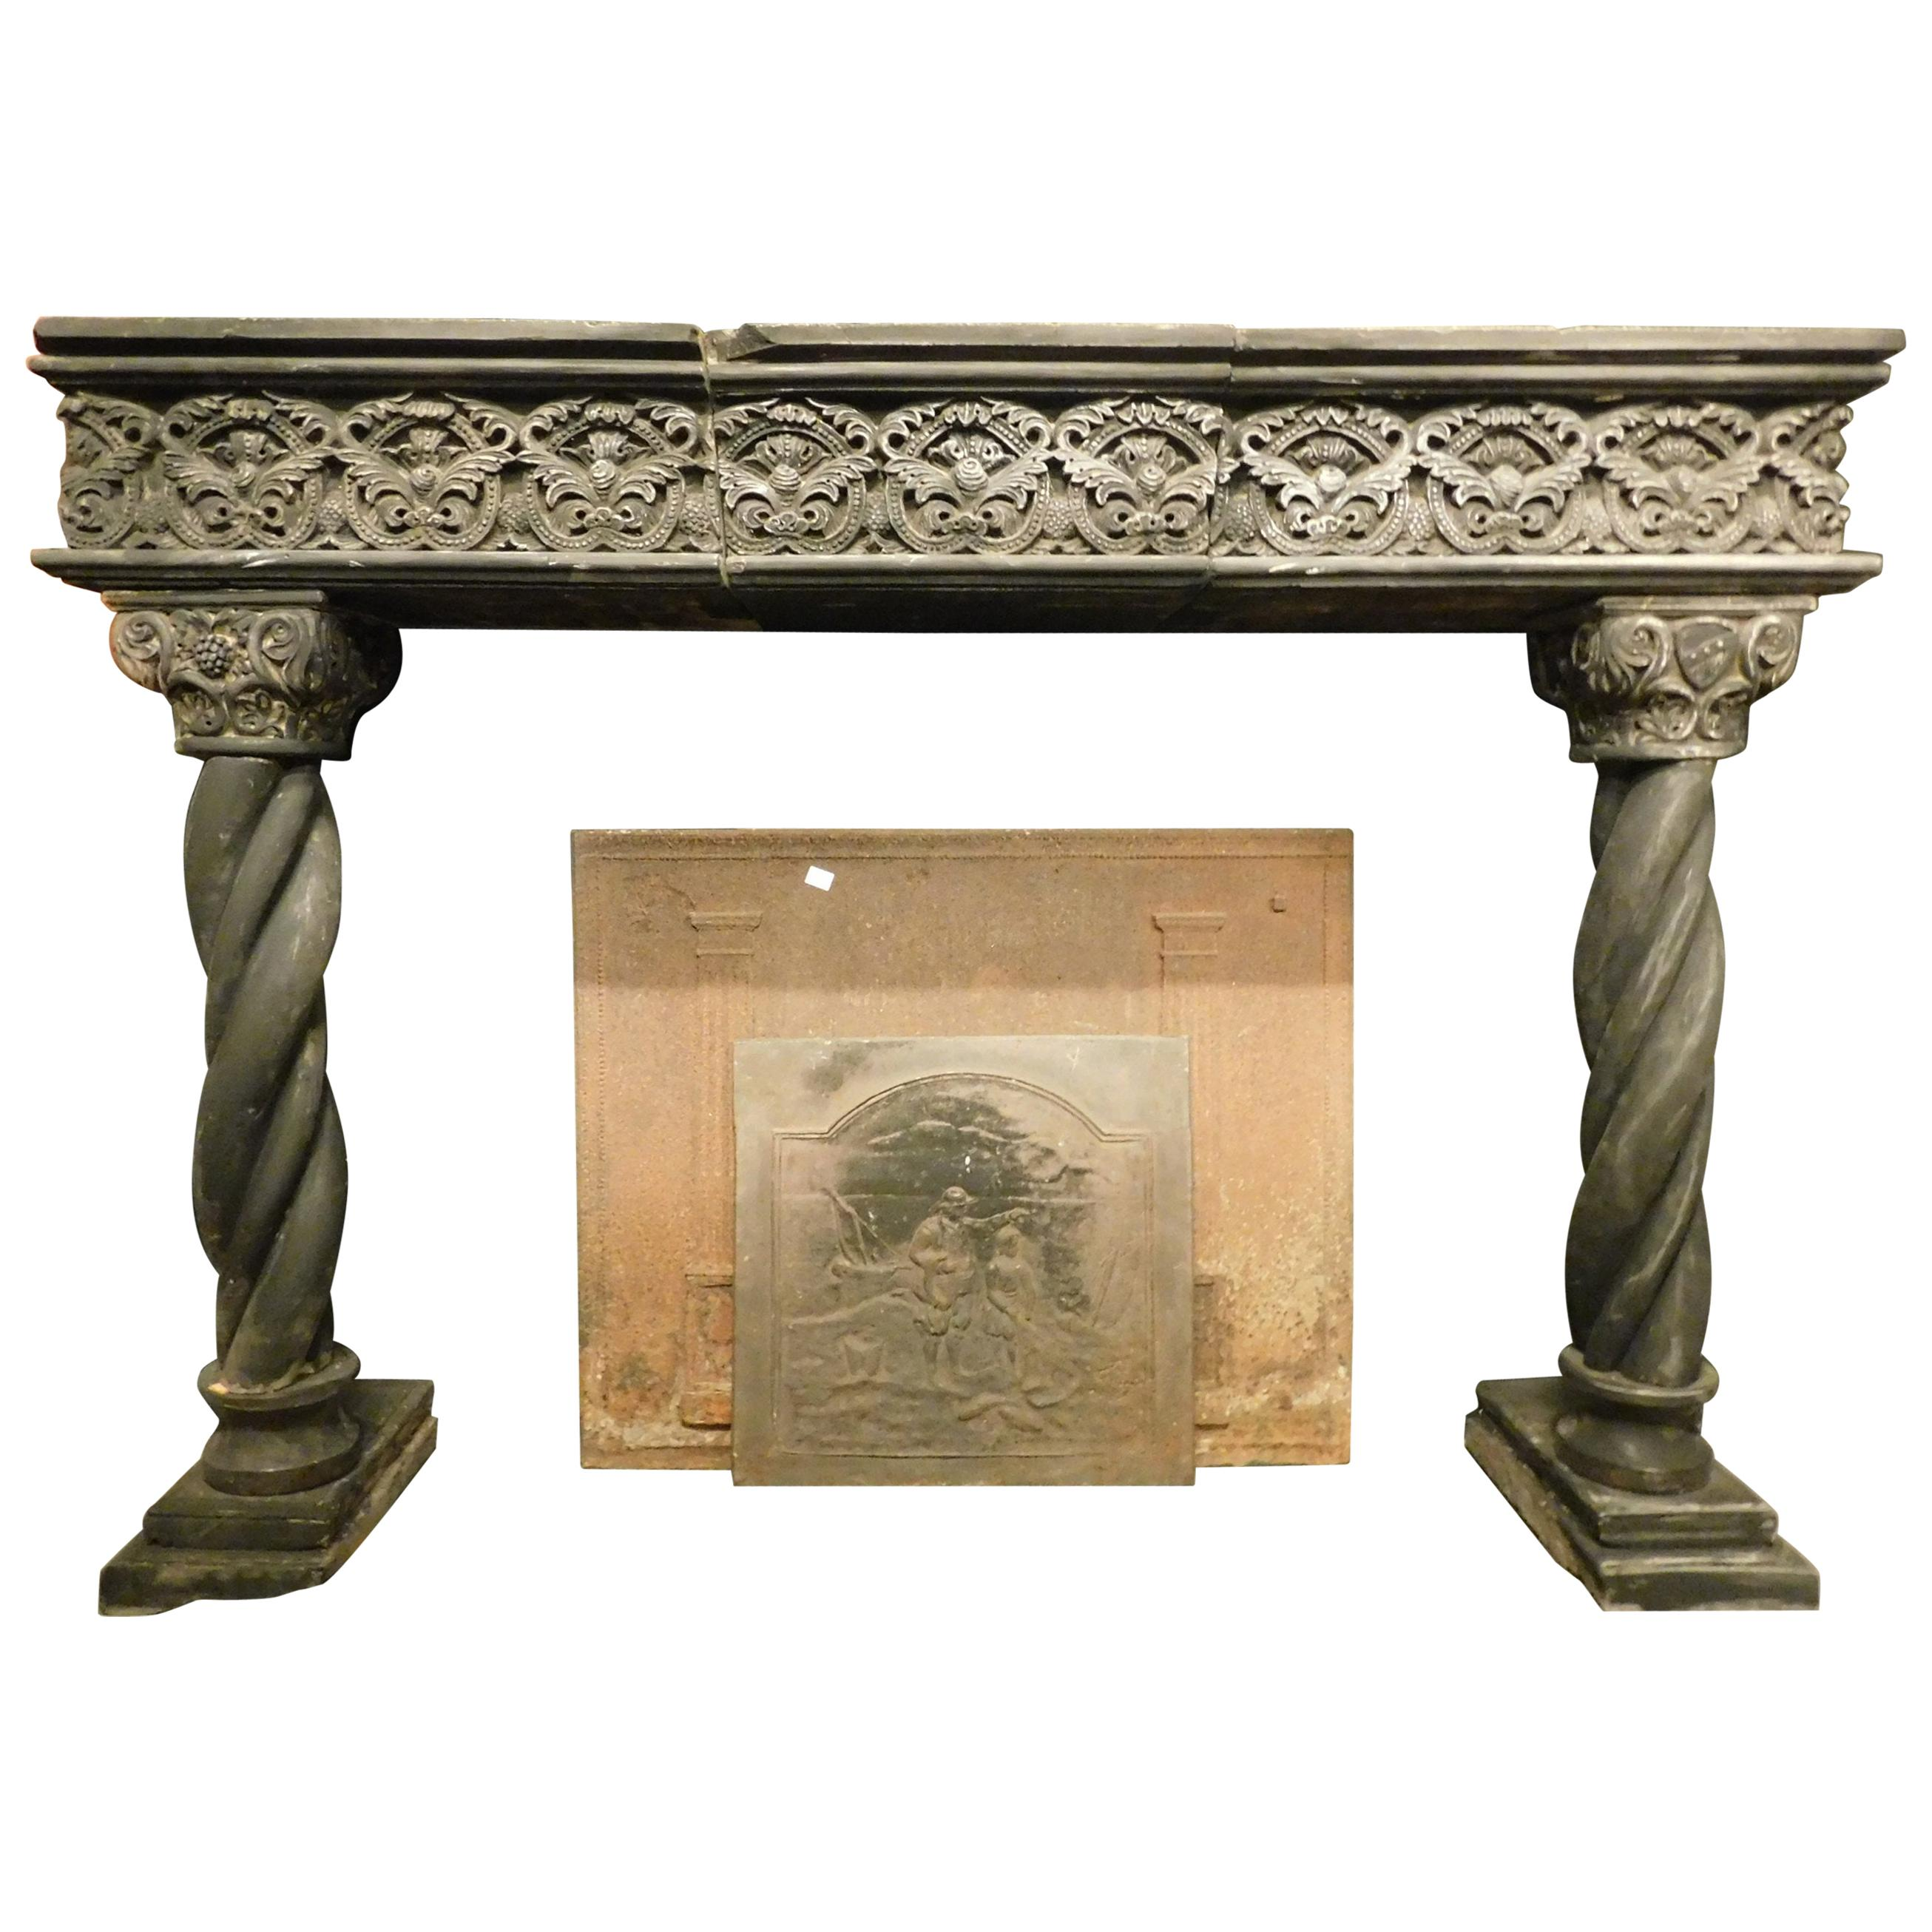 Antique Fireplace Mantel in Dark Slate Stone, Turned Columns, 16th Century Italy